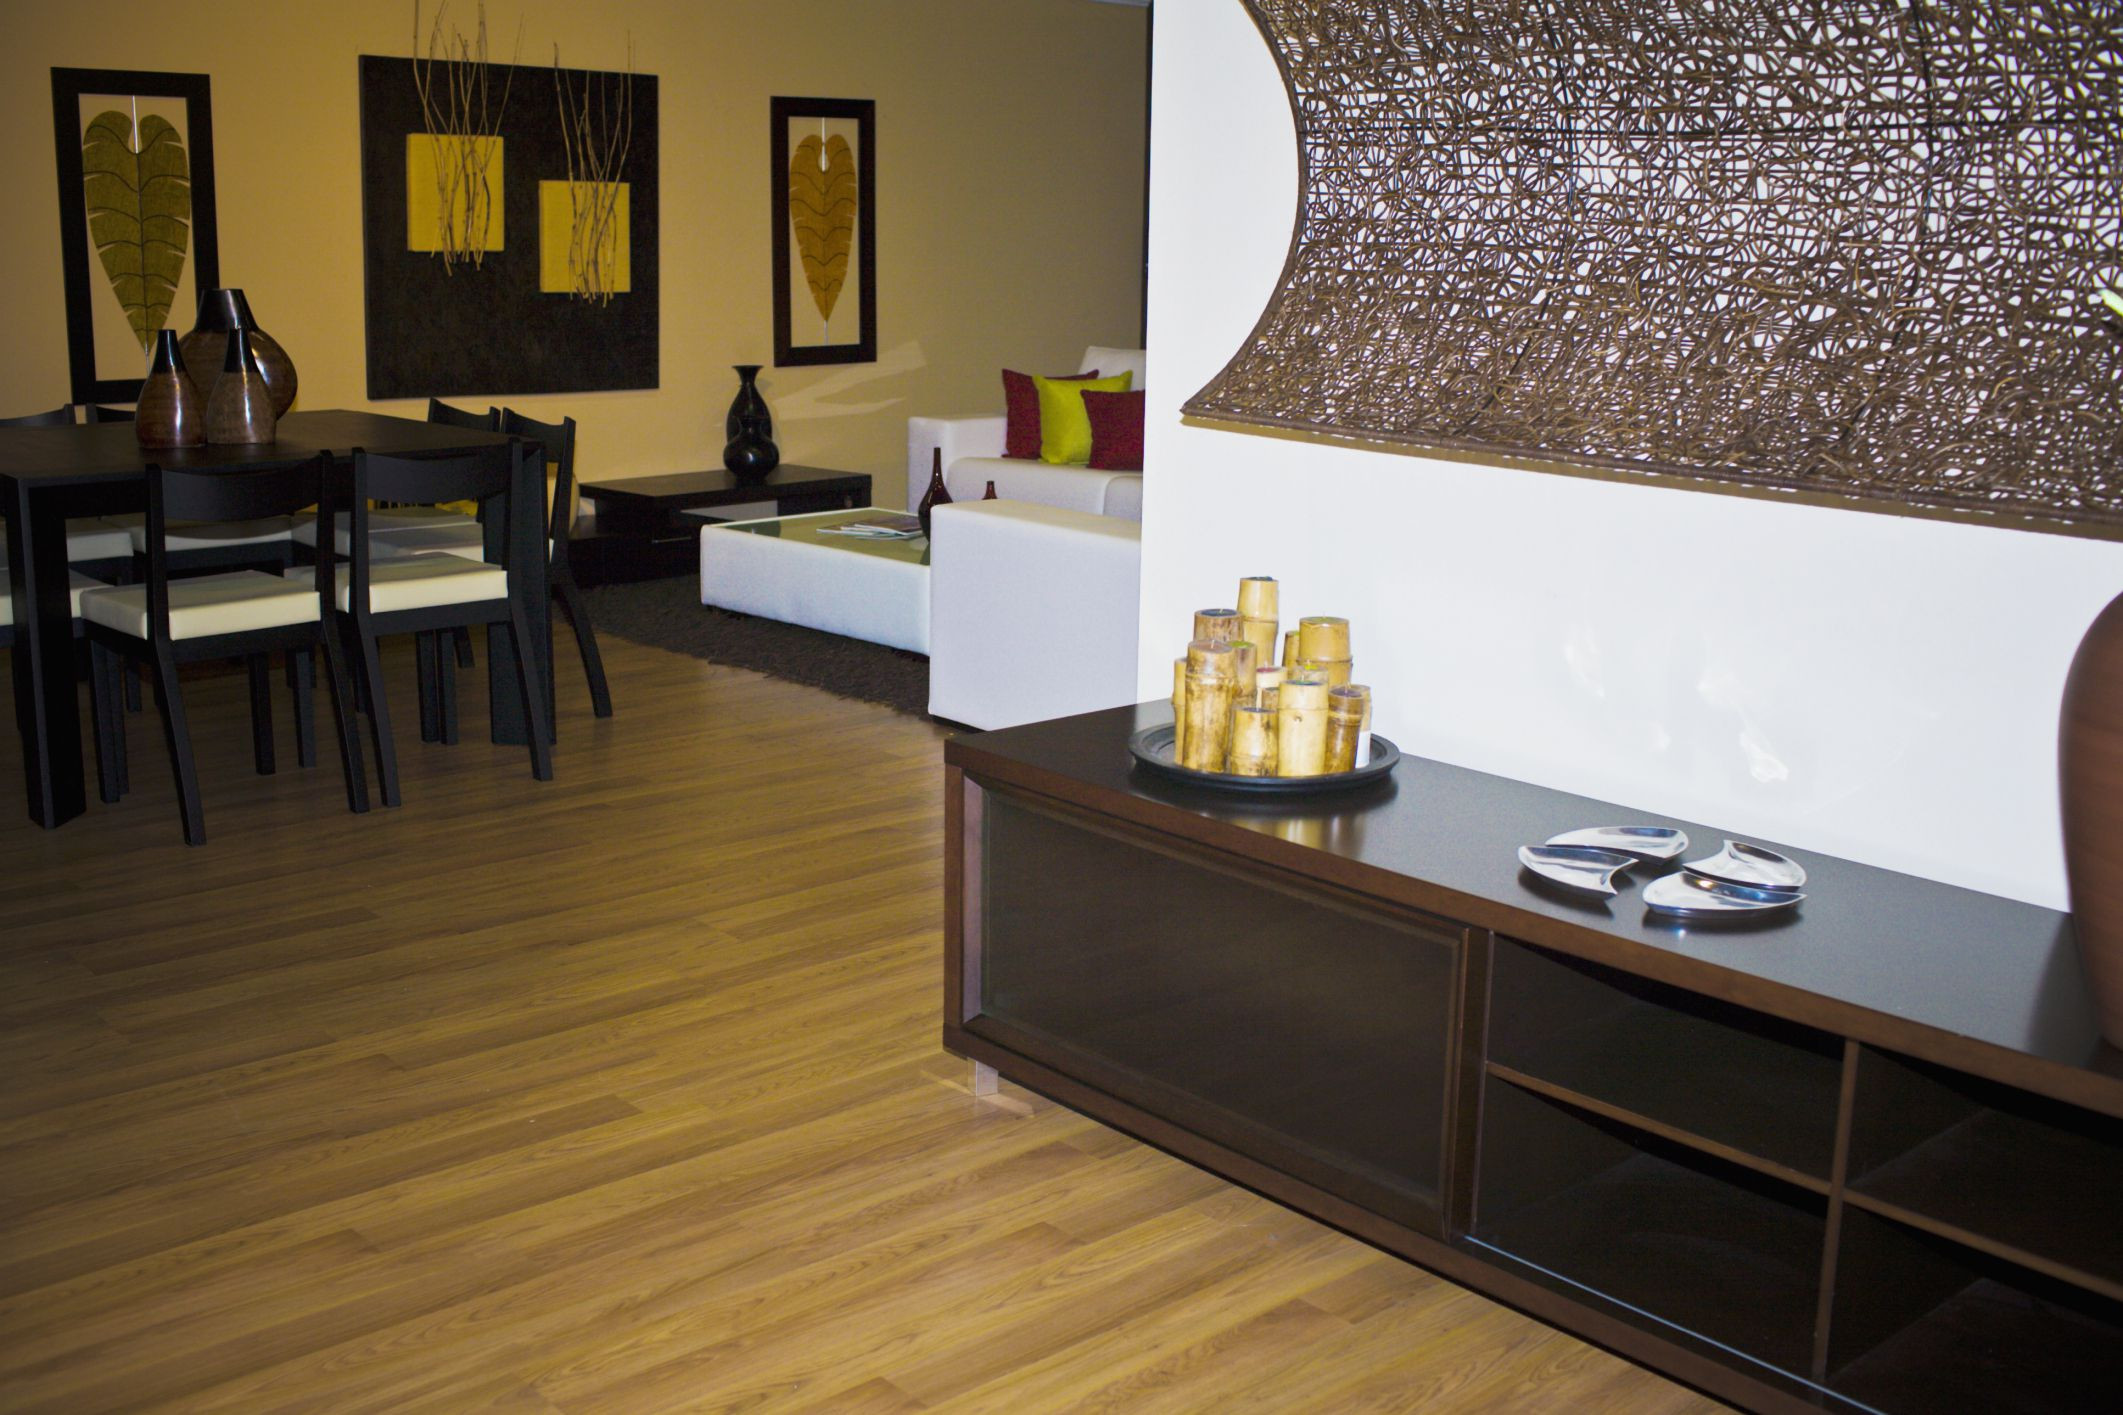 acacia hardwood flooring pros and cons of wood flooring for the basement which kind to buy with bamboo floor 126175330 56a49d283df78cf7728344da